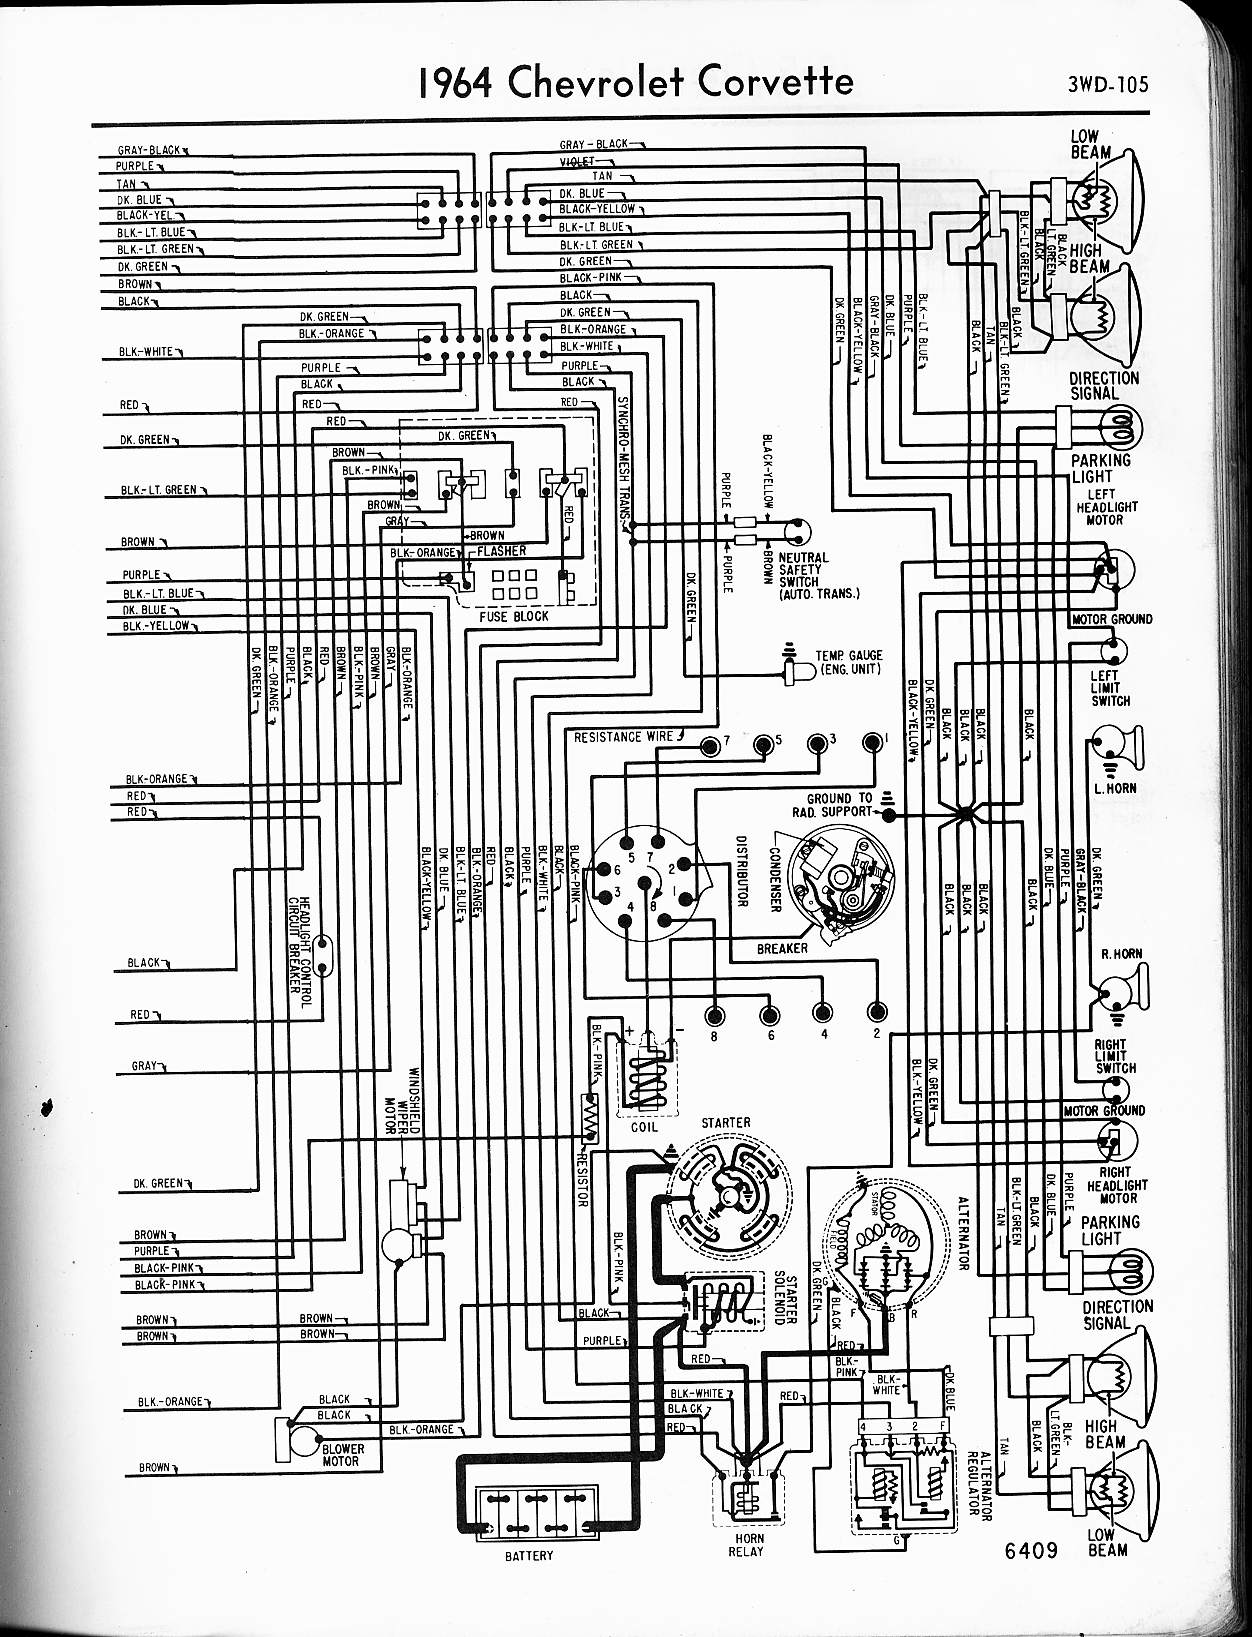 MWireChev64_3WD 105 57 65 chevy wiring diagrams 1962 impala wiring diagram at honlapkeszites.co